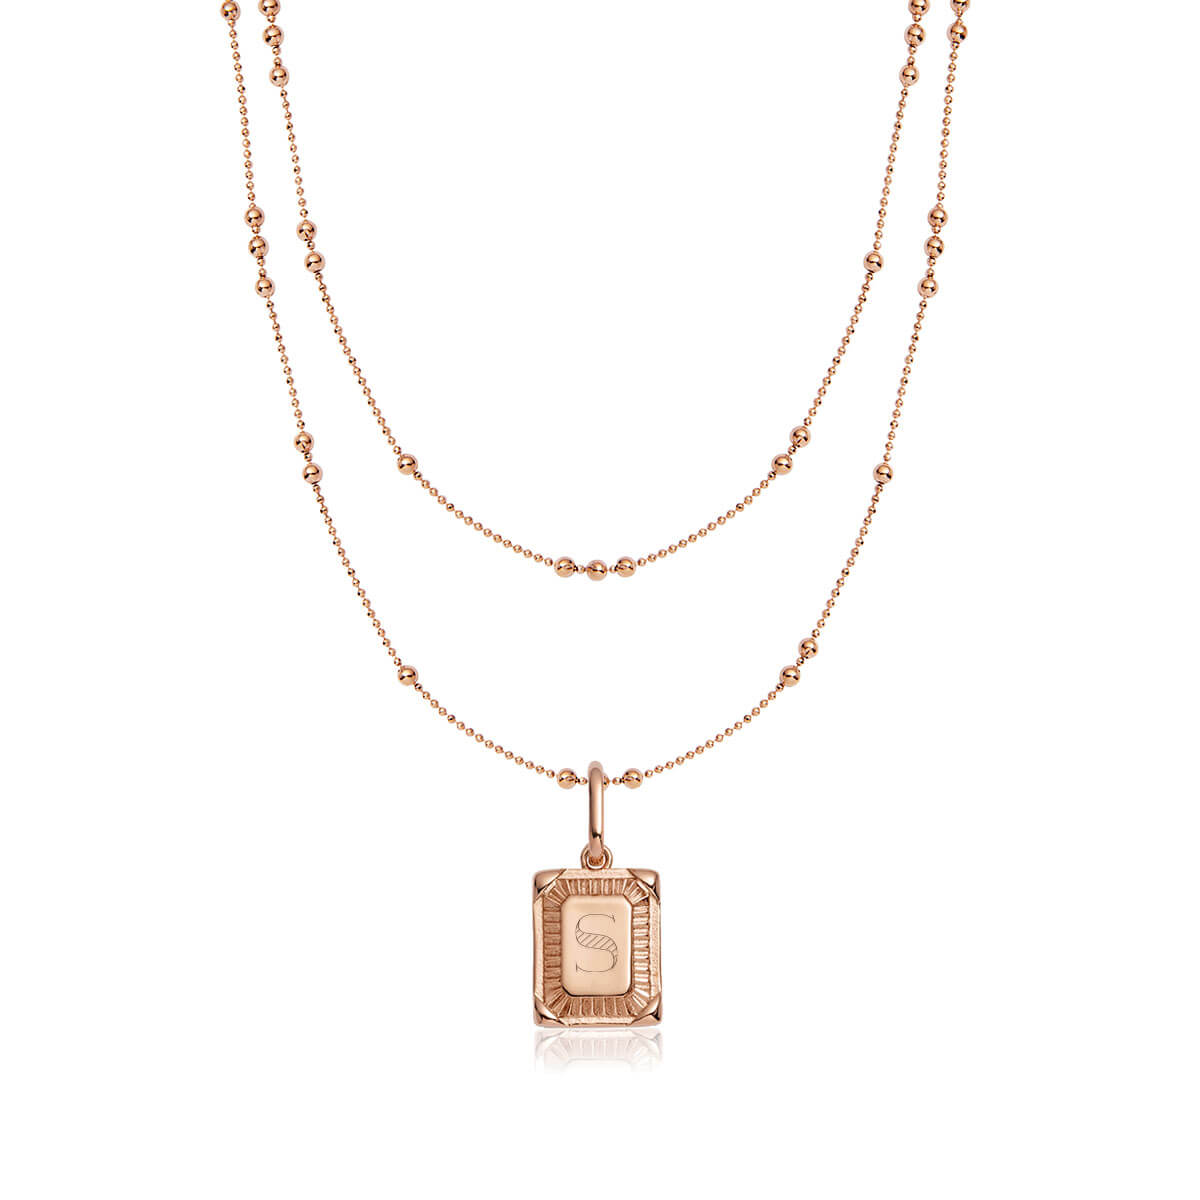 Personalise Double Sphere Chain Necklace (Rose Gold)